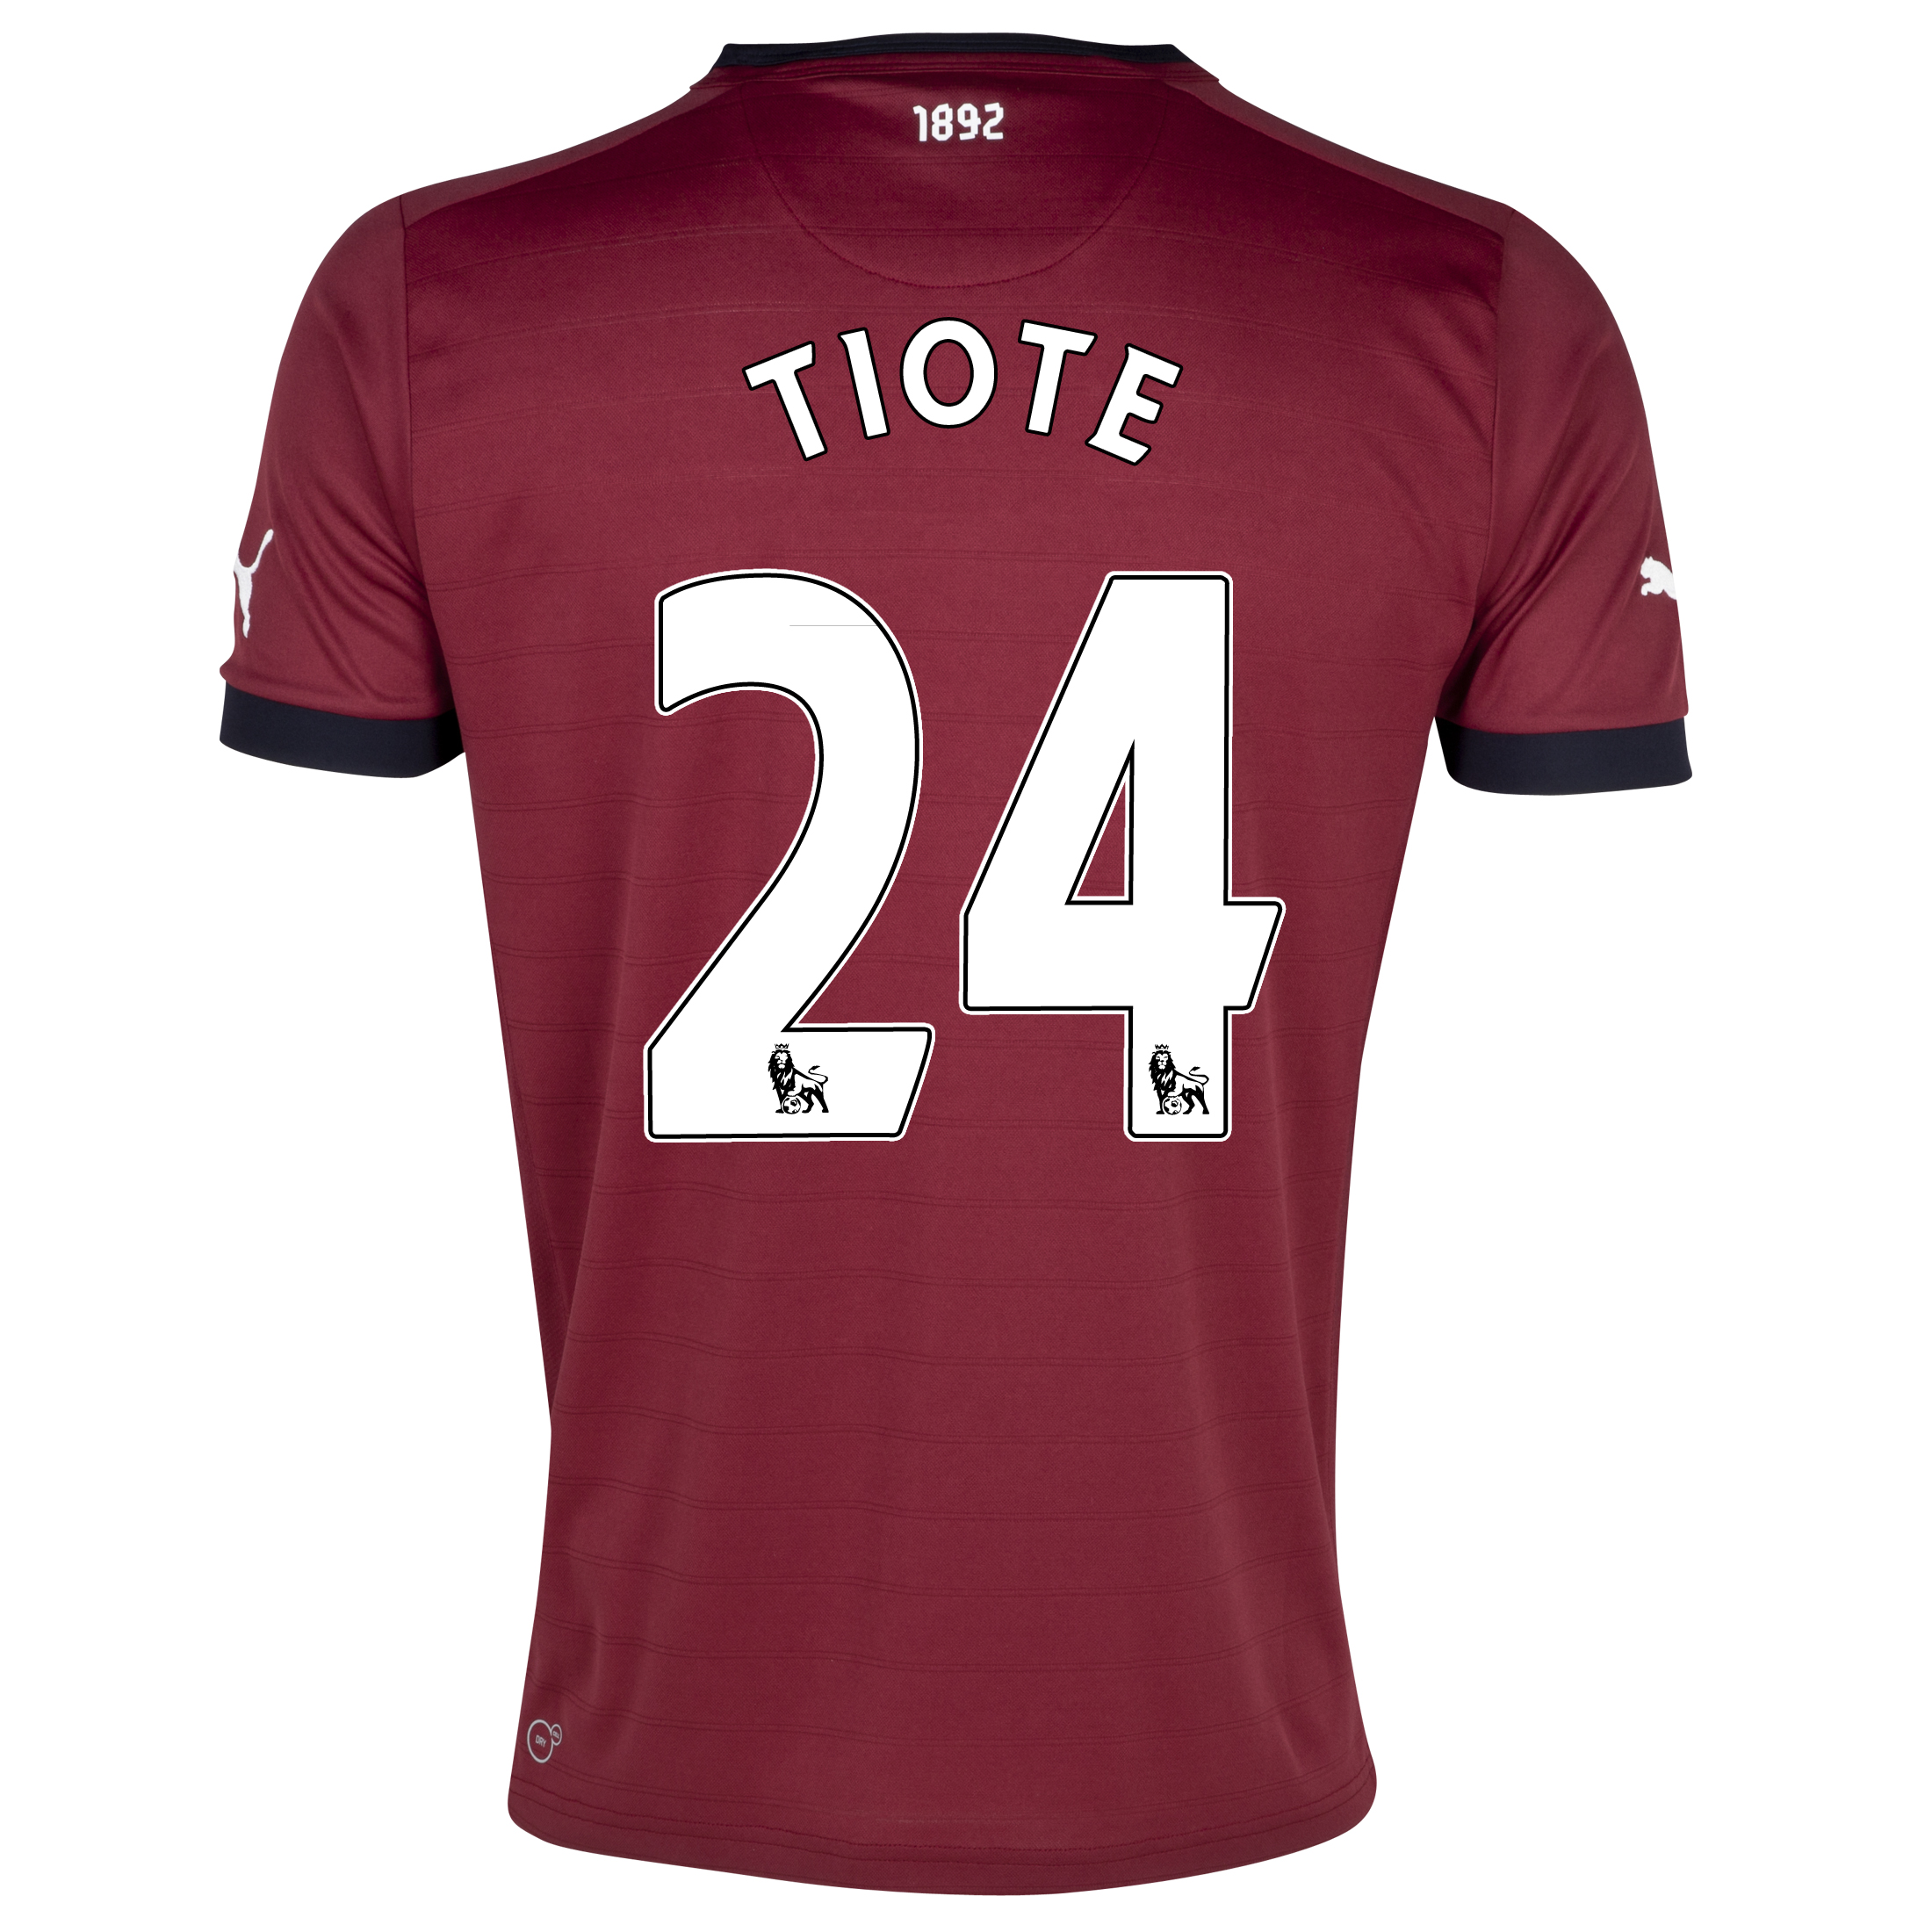 Newcastle United Away Shirt 2012/13 - Kids with Tiote 24 printing